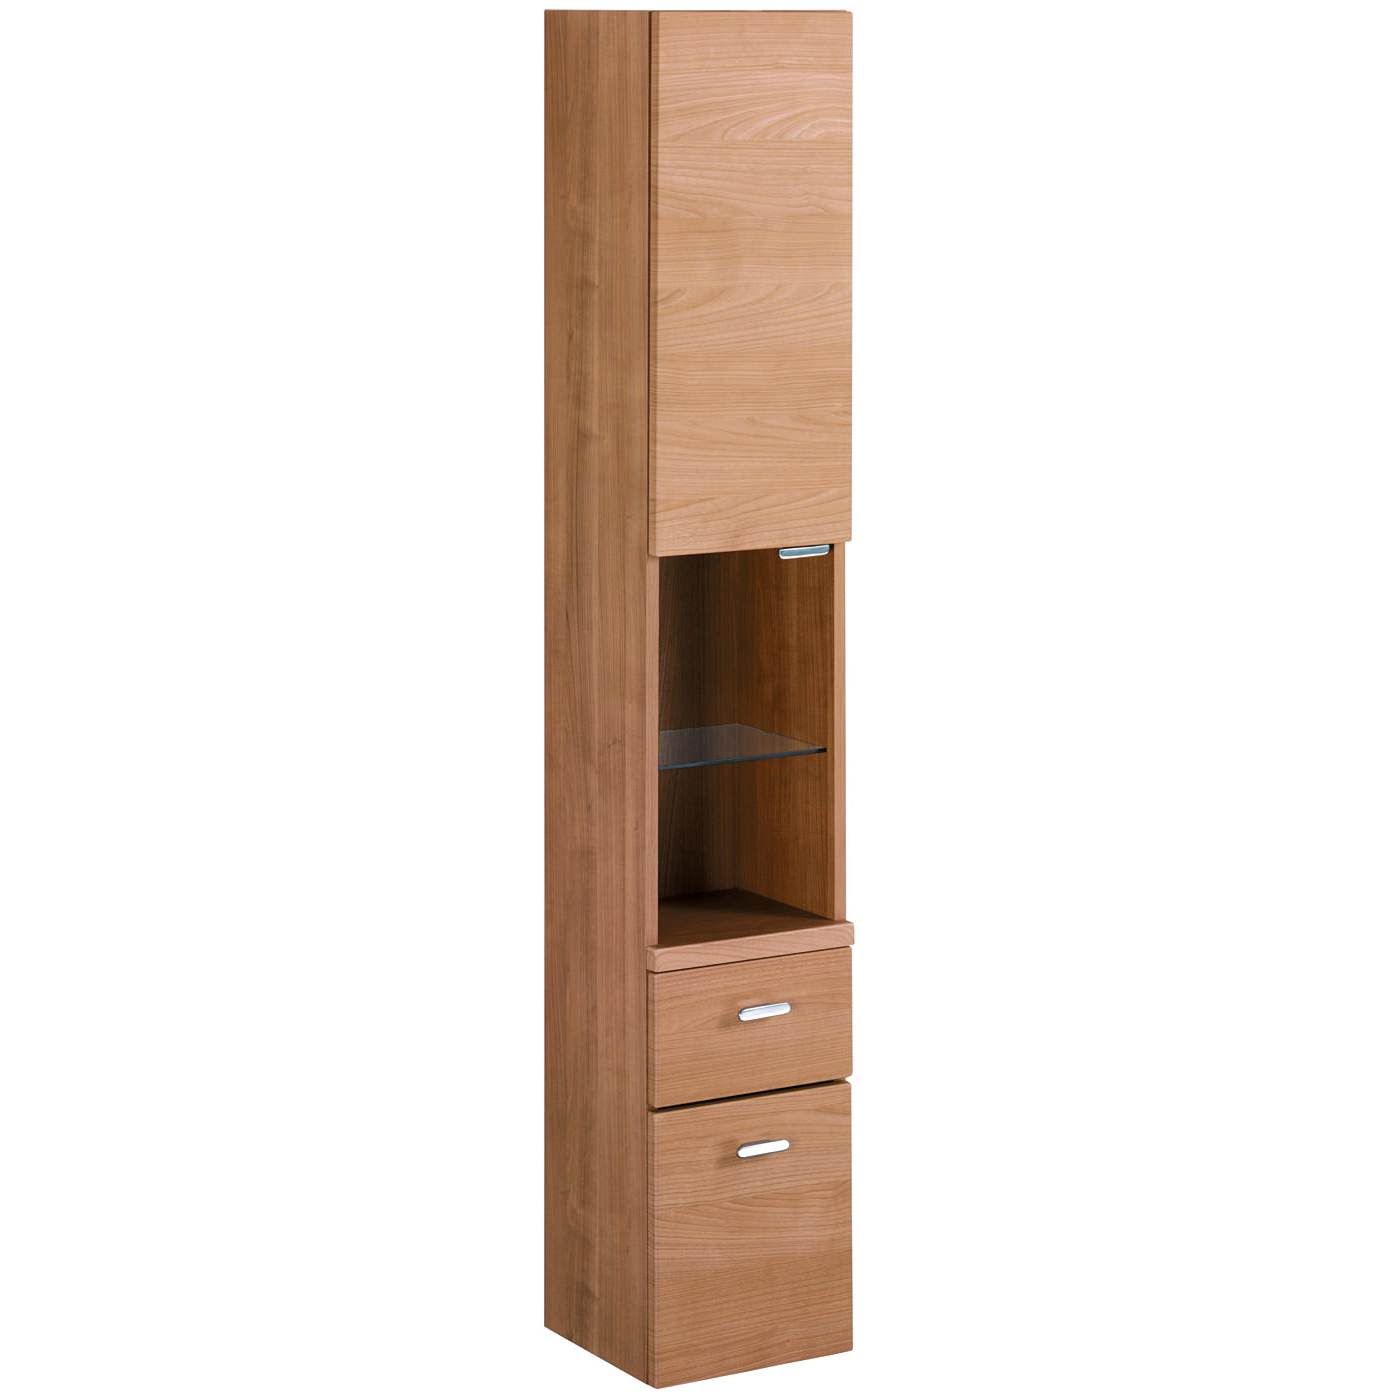 Ideal standard concept 300mm wall hung tall unit with drawers for 300mm tall kitchen unit